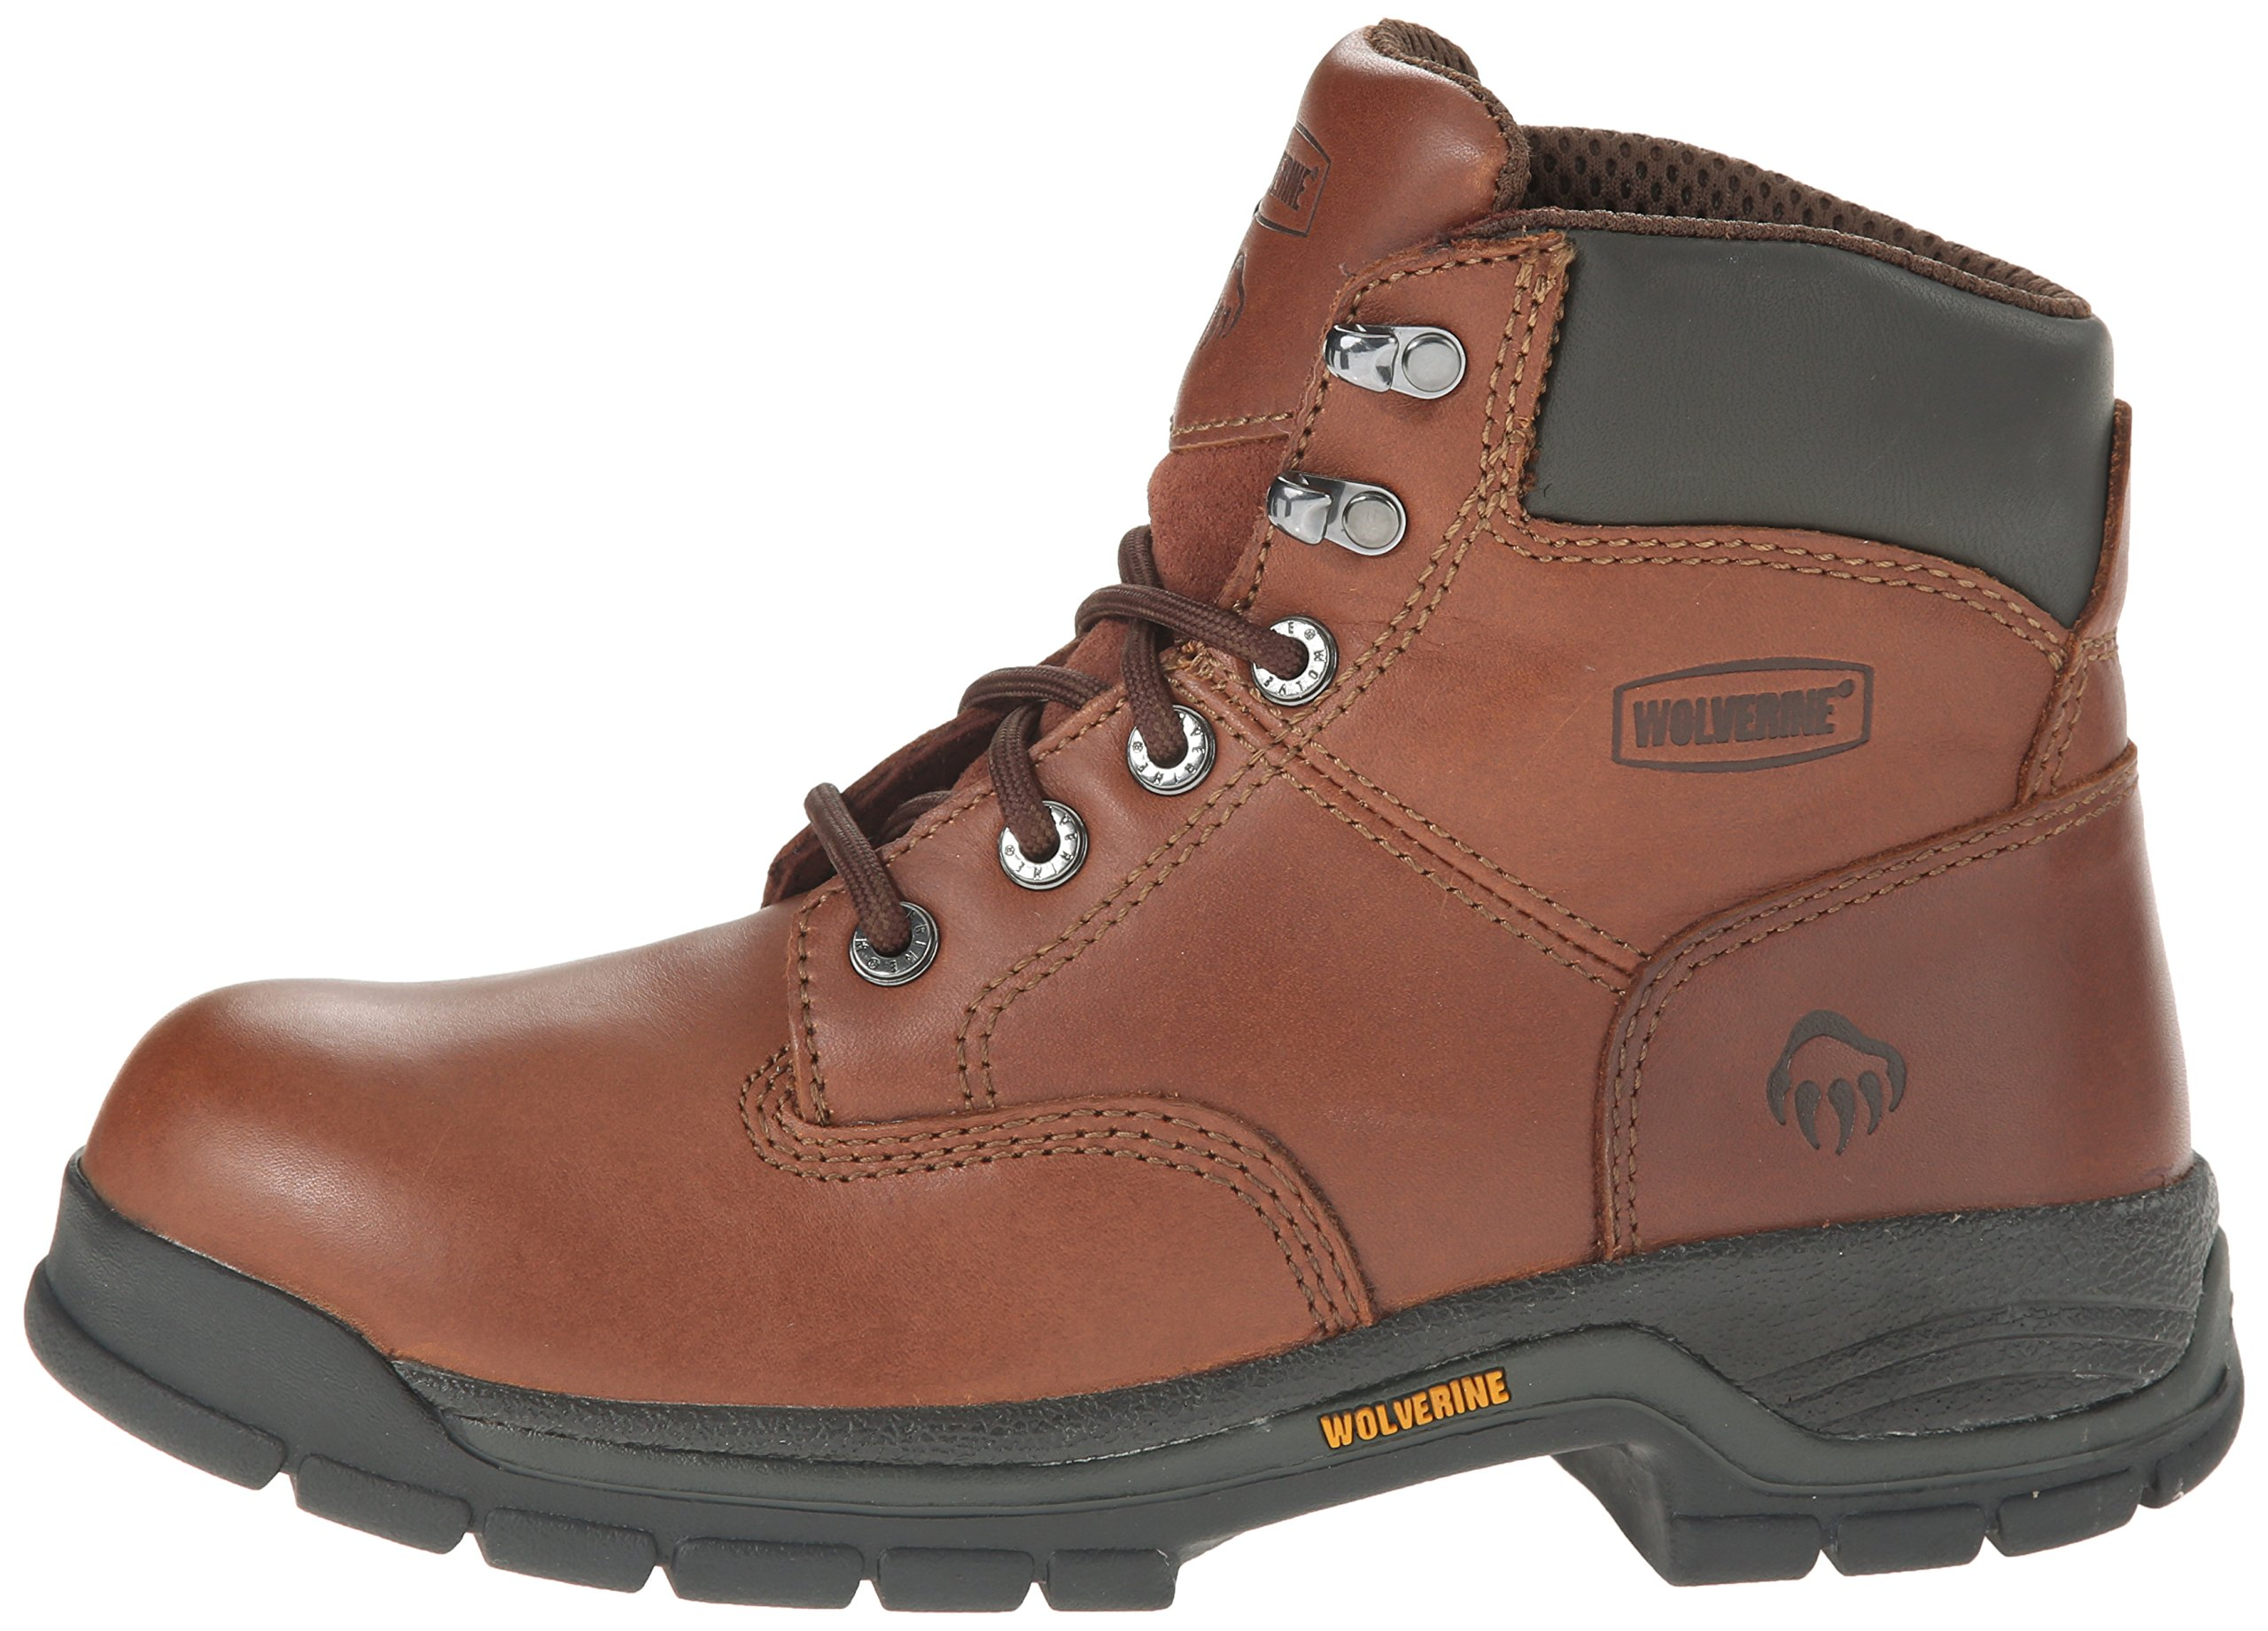 Wolverine Women's Harrison WMS 6'' LACE UP-W, Brown, 10 M US by Wolverine (Image #5)